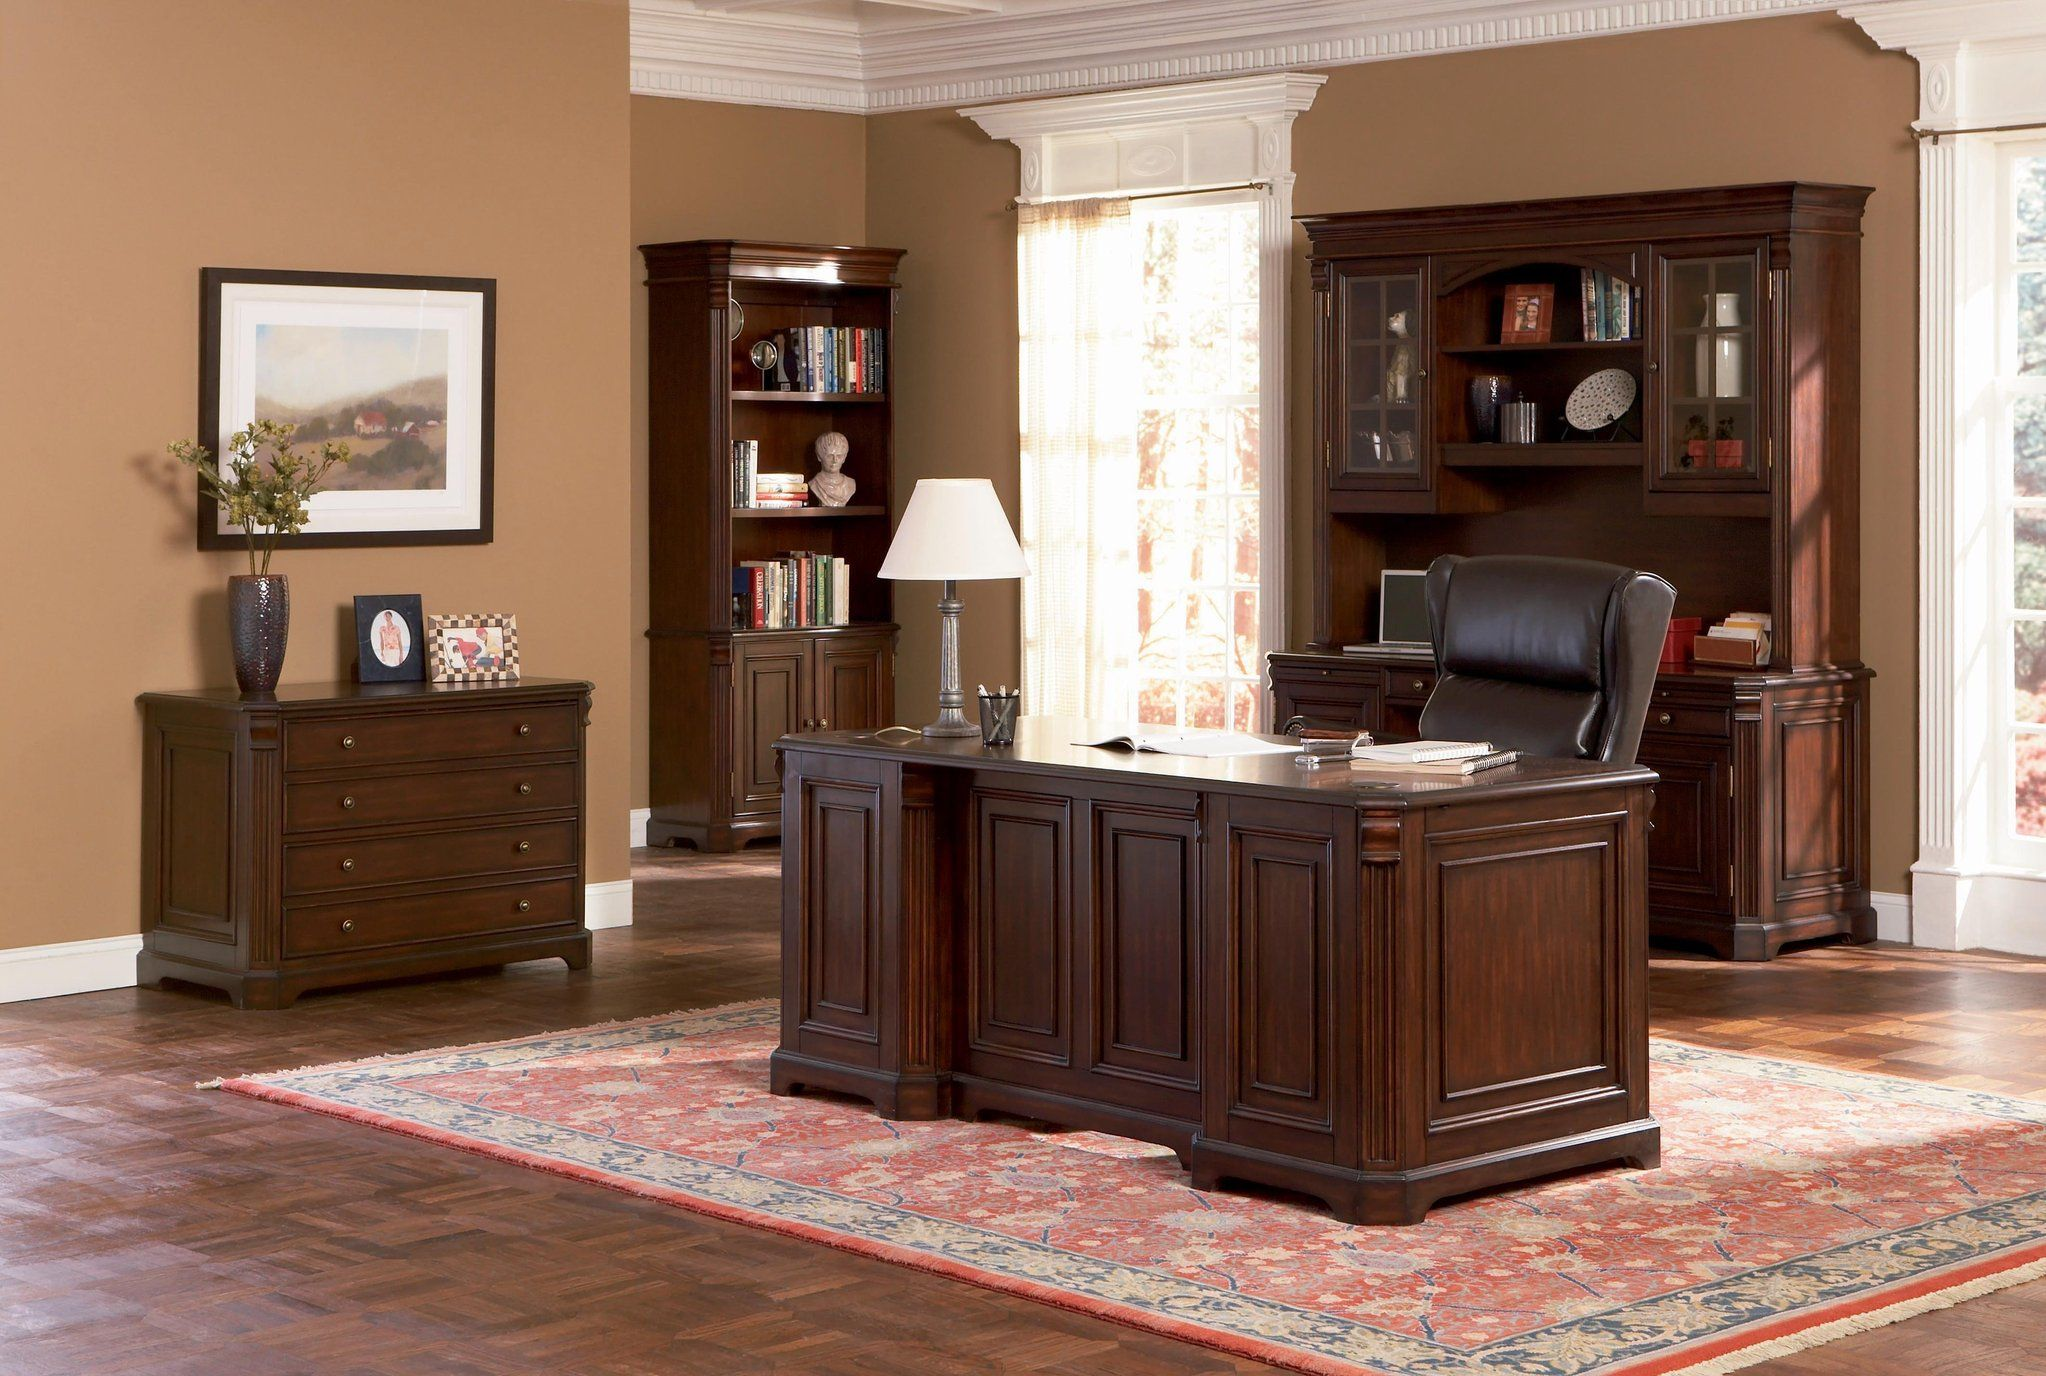 Brown Wood Desk Set Clic Paneled Home Office Furniture Collection In Medium Walnut Finish 4820